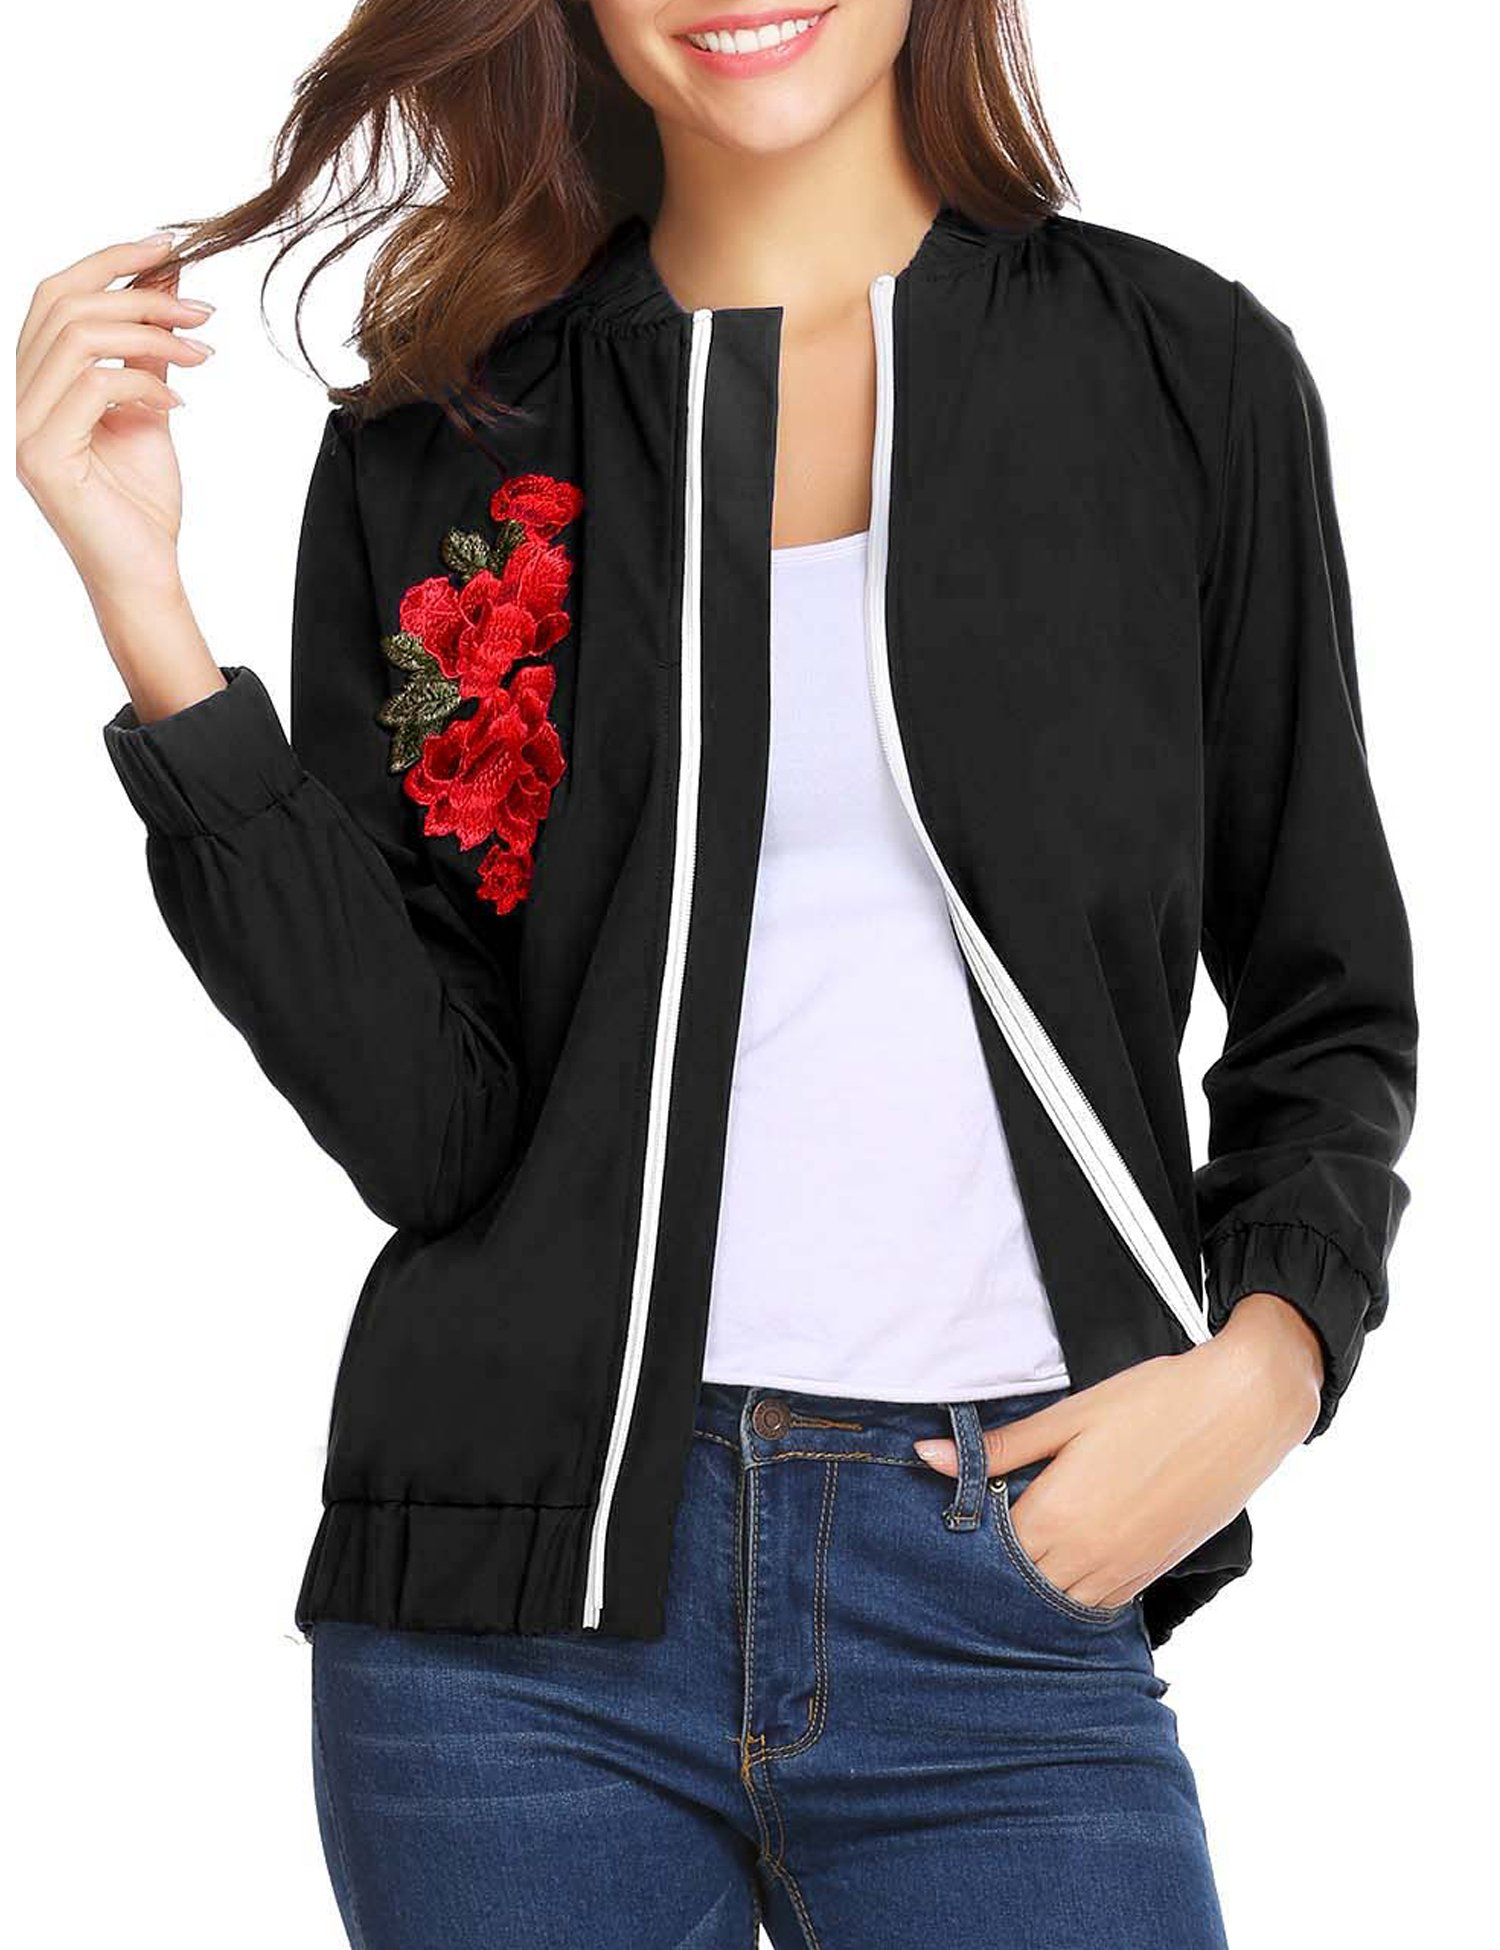 Elover Women's Embroidery Patch Classic Biker Quilted Bomber Flight Jacket (Black, XL)